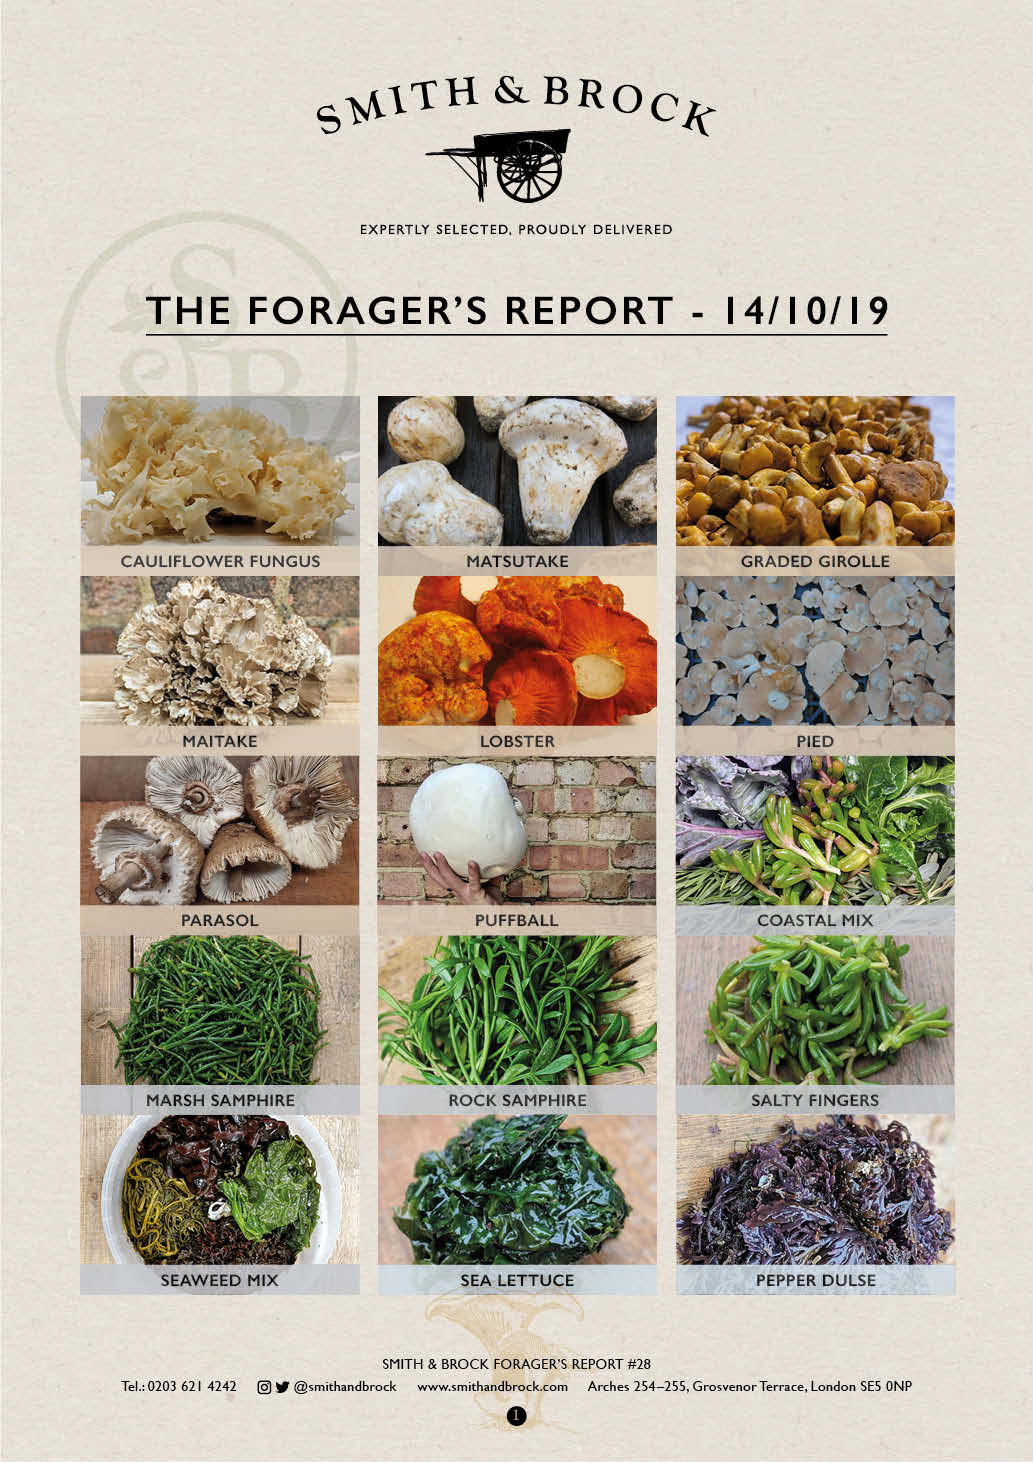 Smith&Brock Foraged Products Report 14 Oct 2019 28